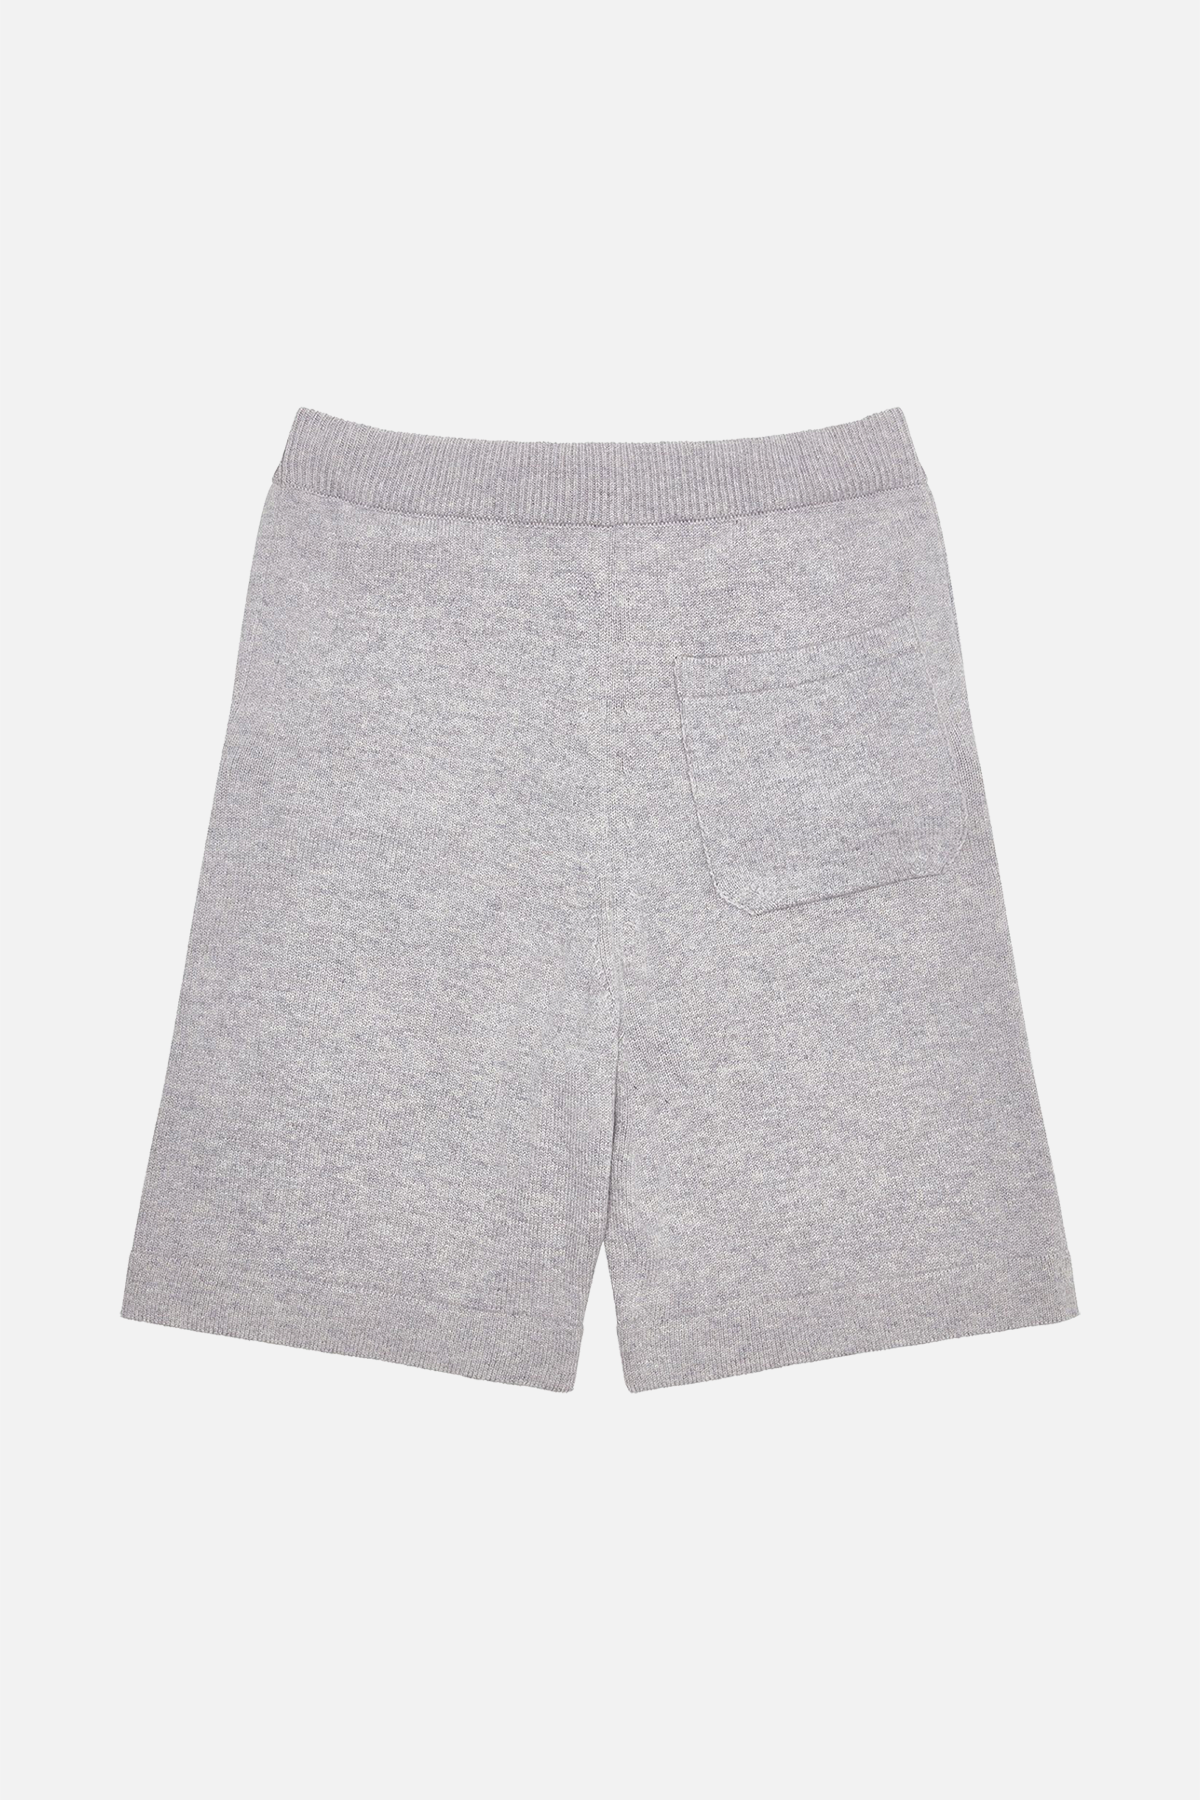 The Shorts in Mist